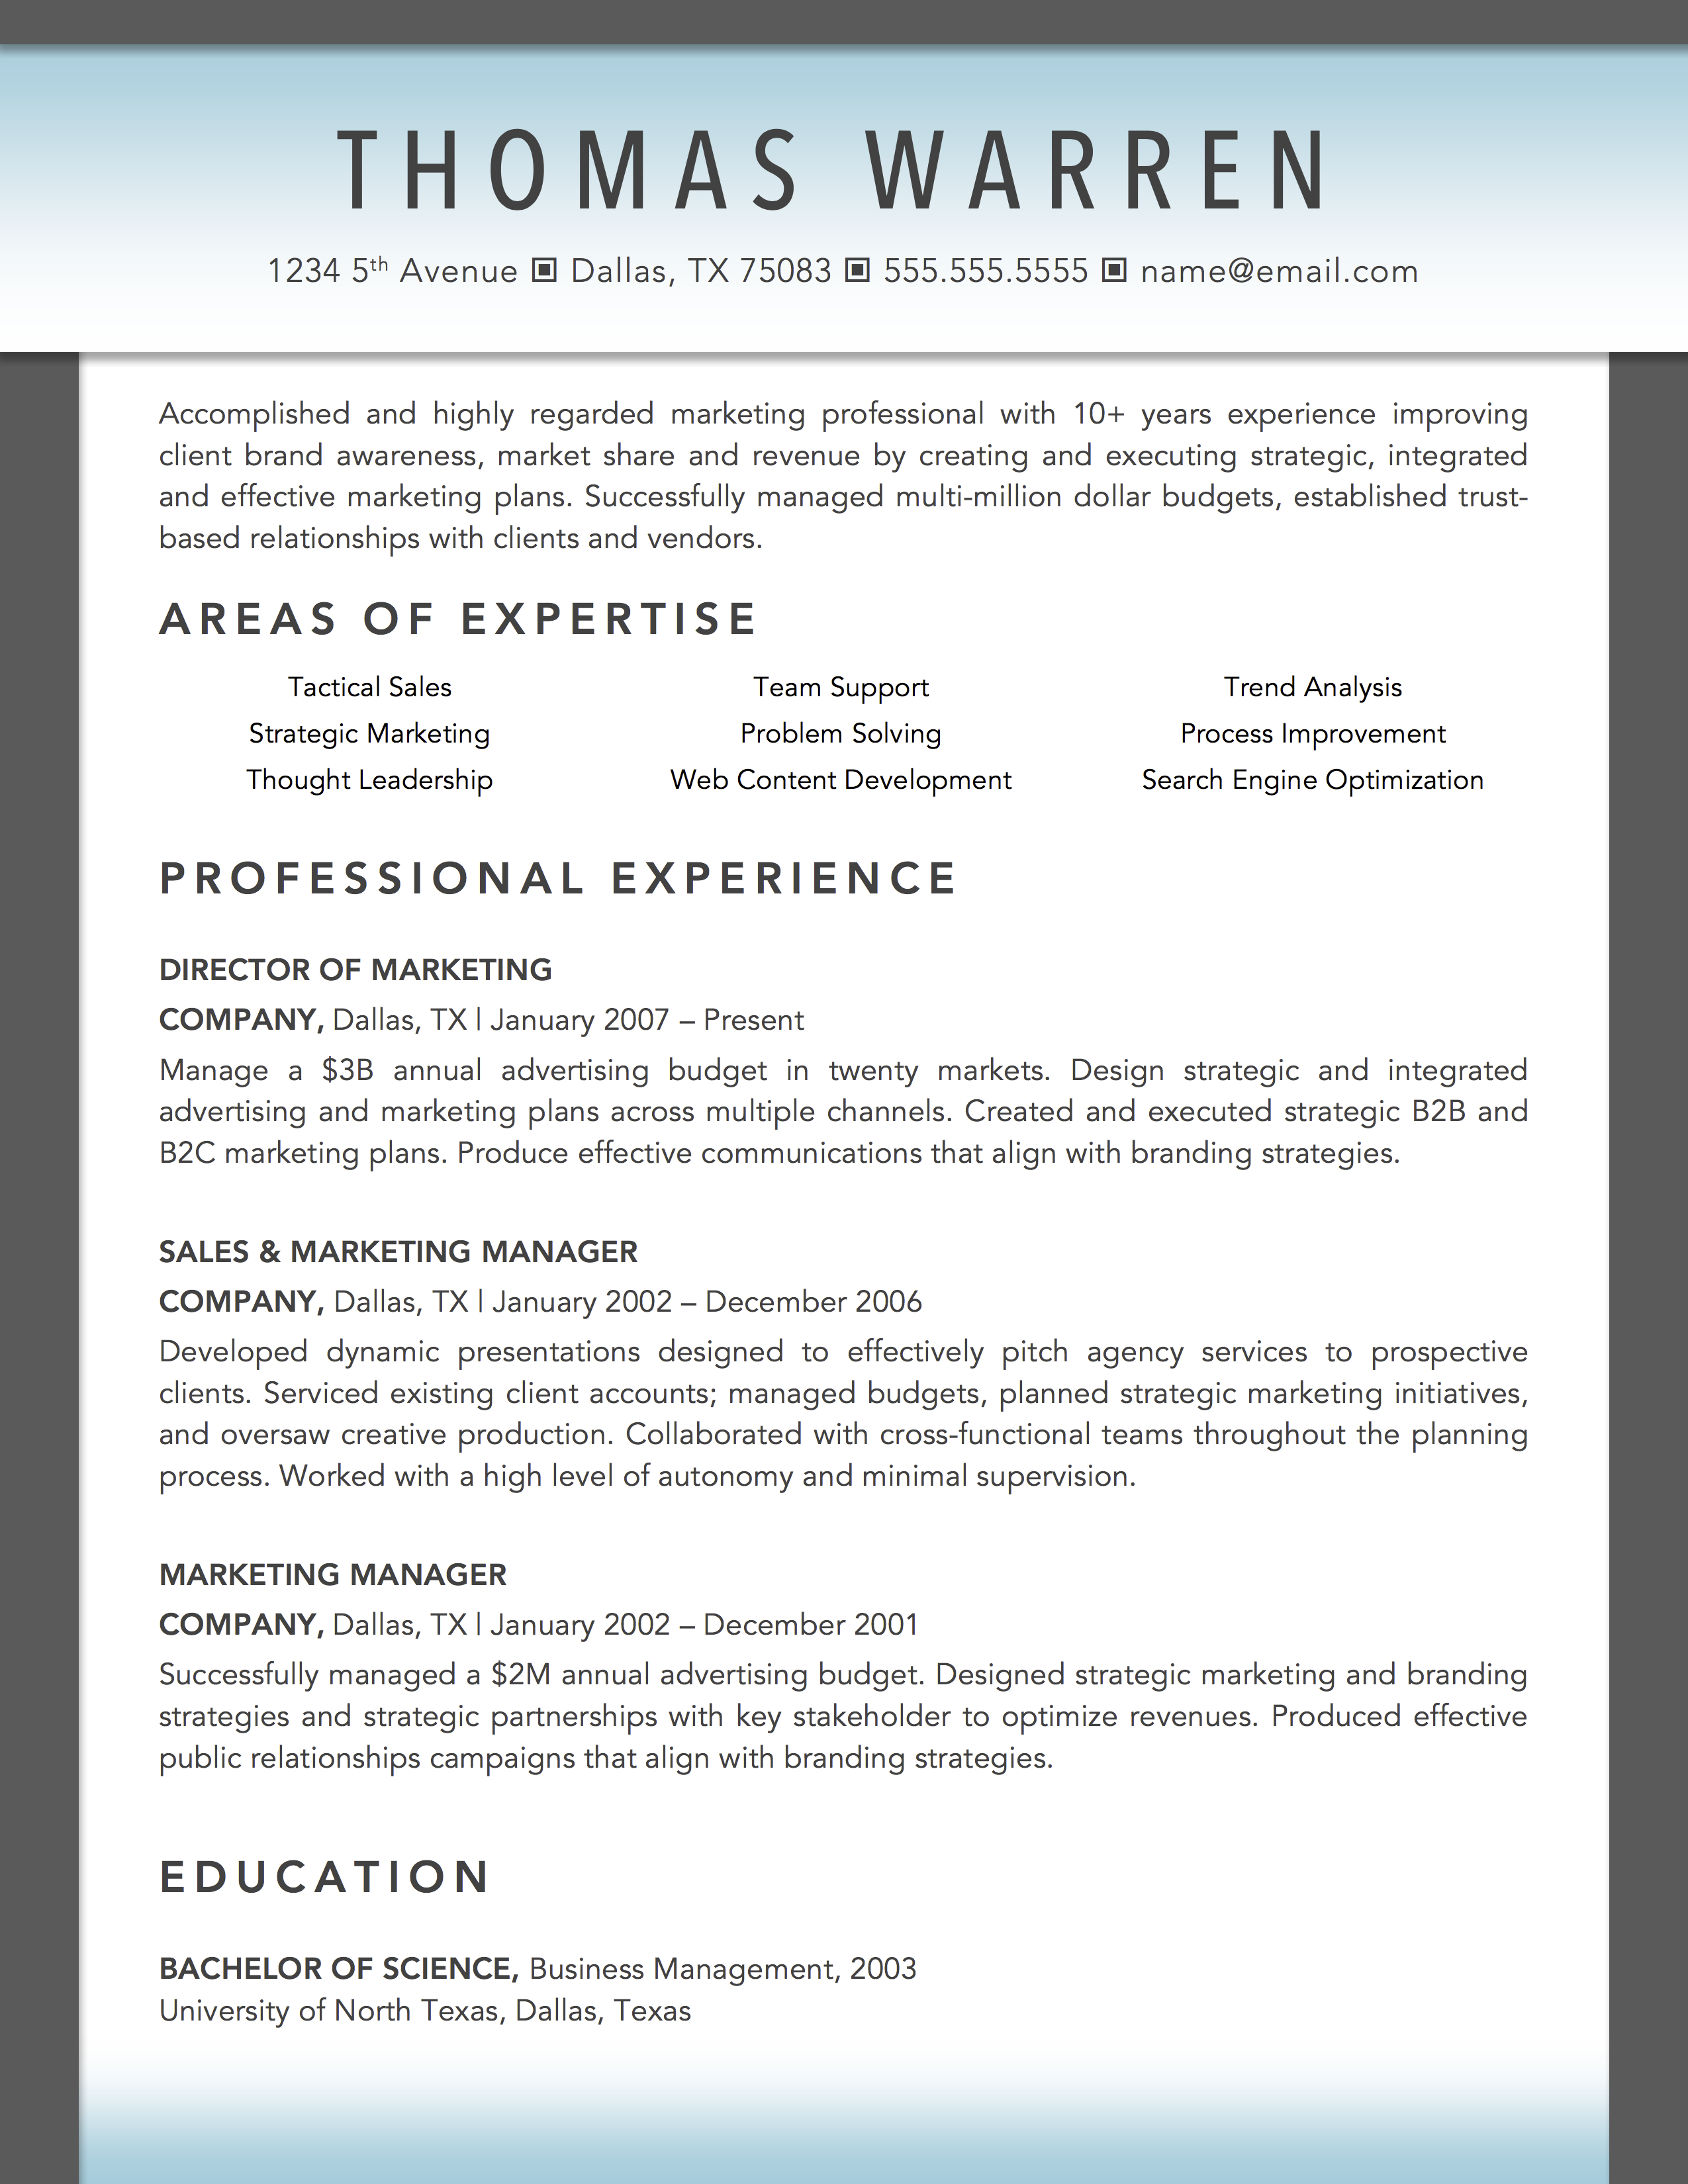 Resume Paper Resume Template Best Paper For Resume What Good VisualCV  Best Paper For Resume